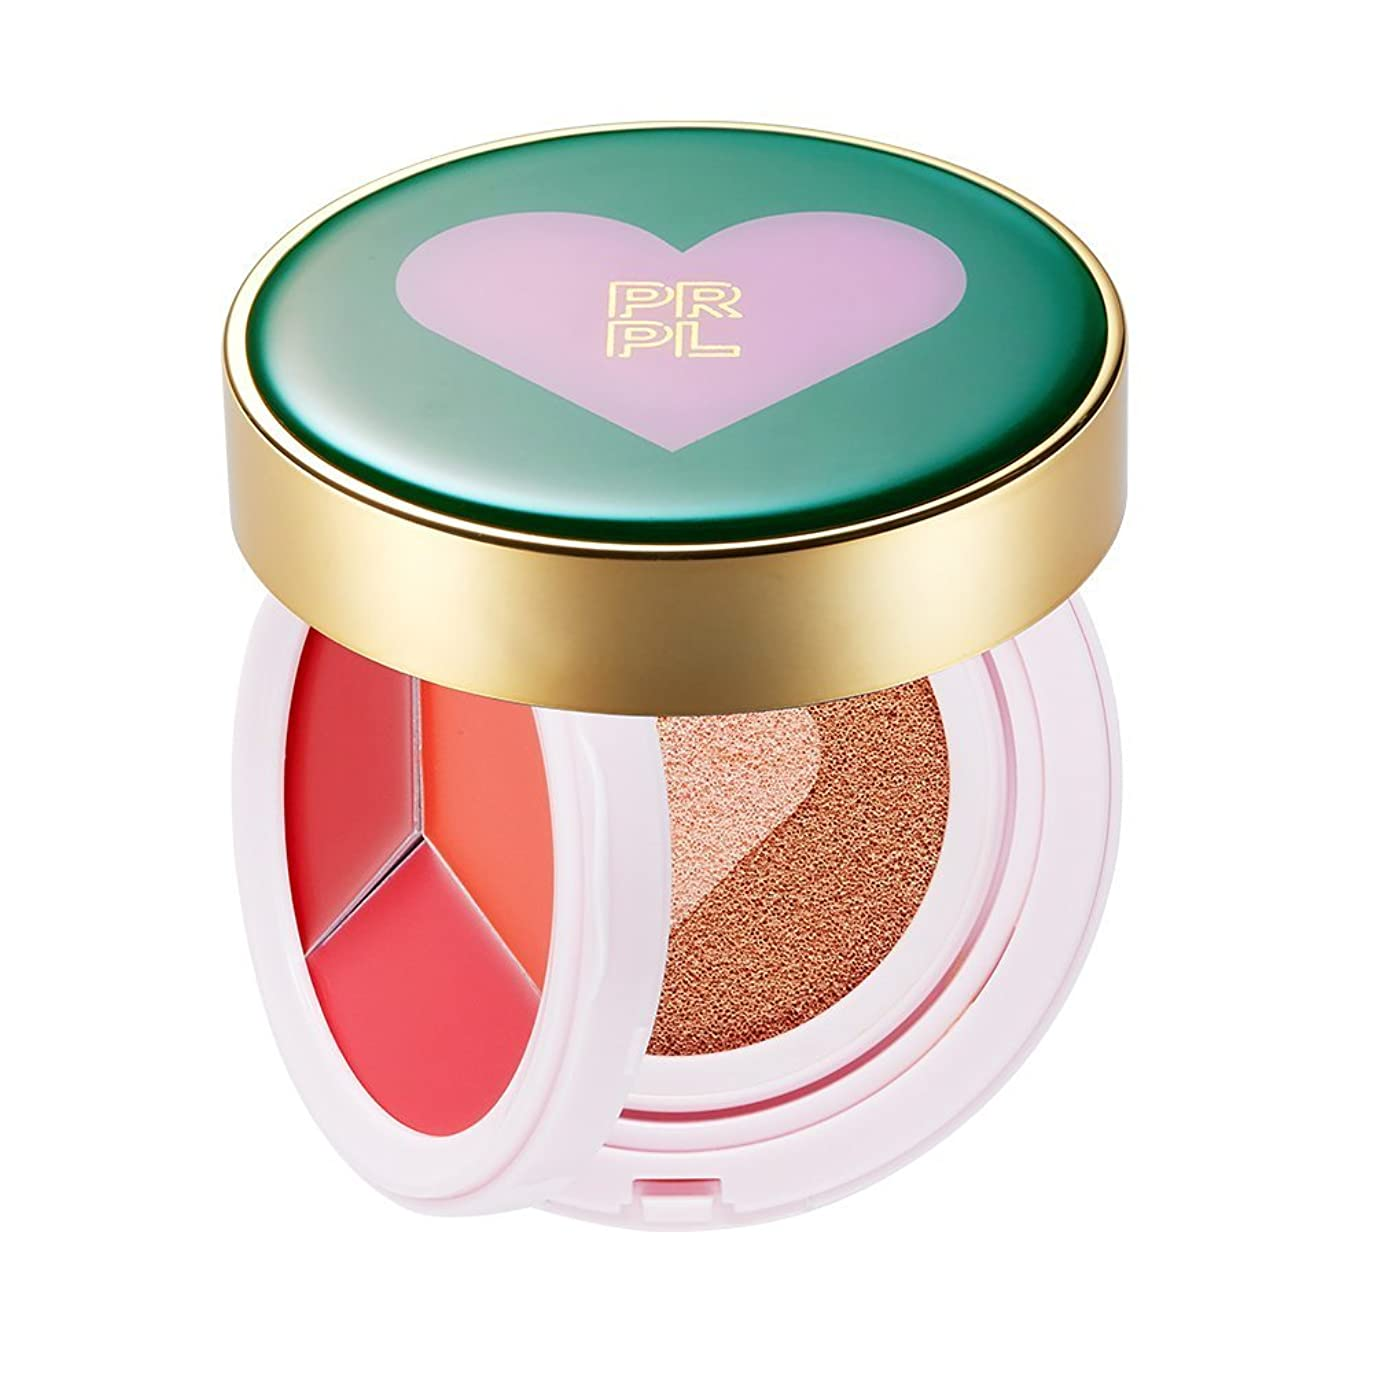 魅惑的な因子詩PRPL Kiss&Heart Cushion (Lip Glow Pink/Lip Glow Orange/Lip Glow Red) Triple Heart Cushion Compact (SPF50+, PA+++) (#23 Pure Beige) Korean Make-up Cosmetics